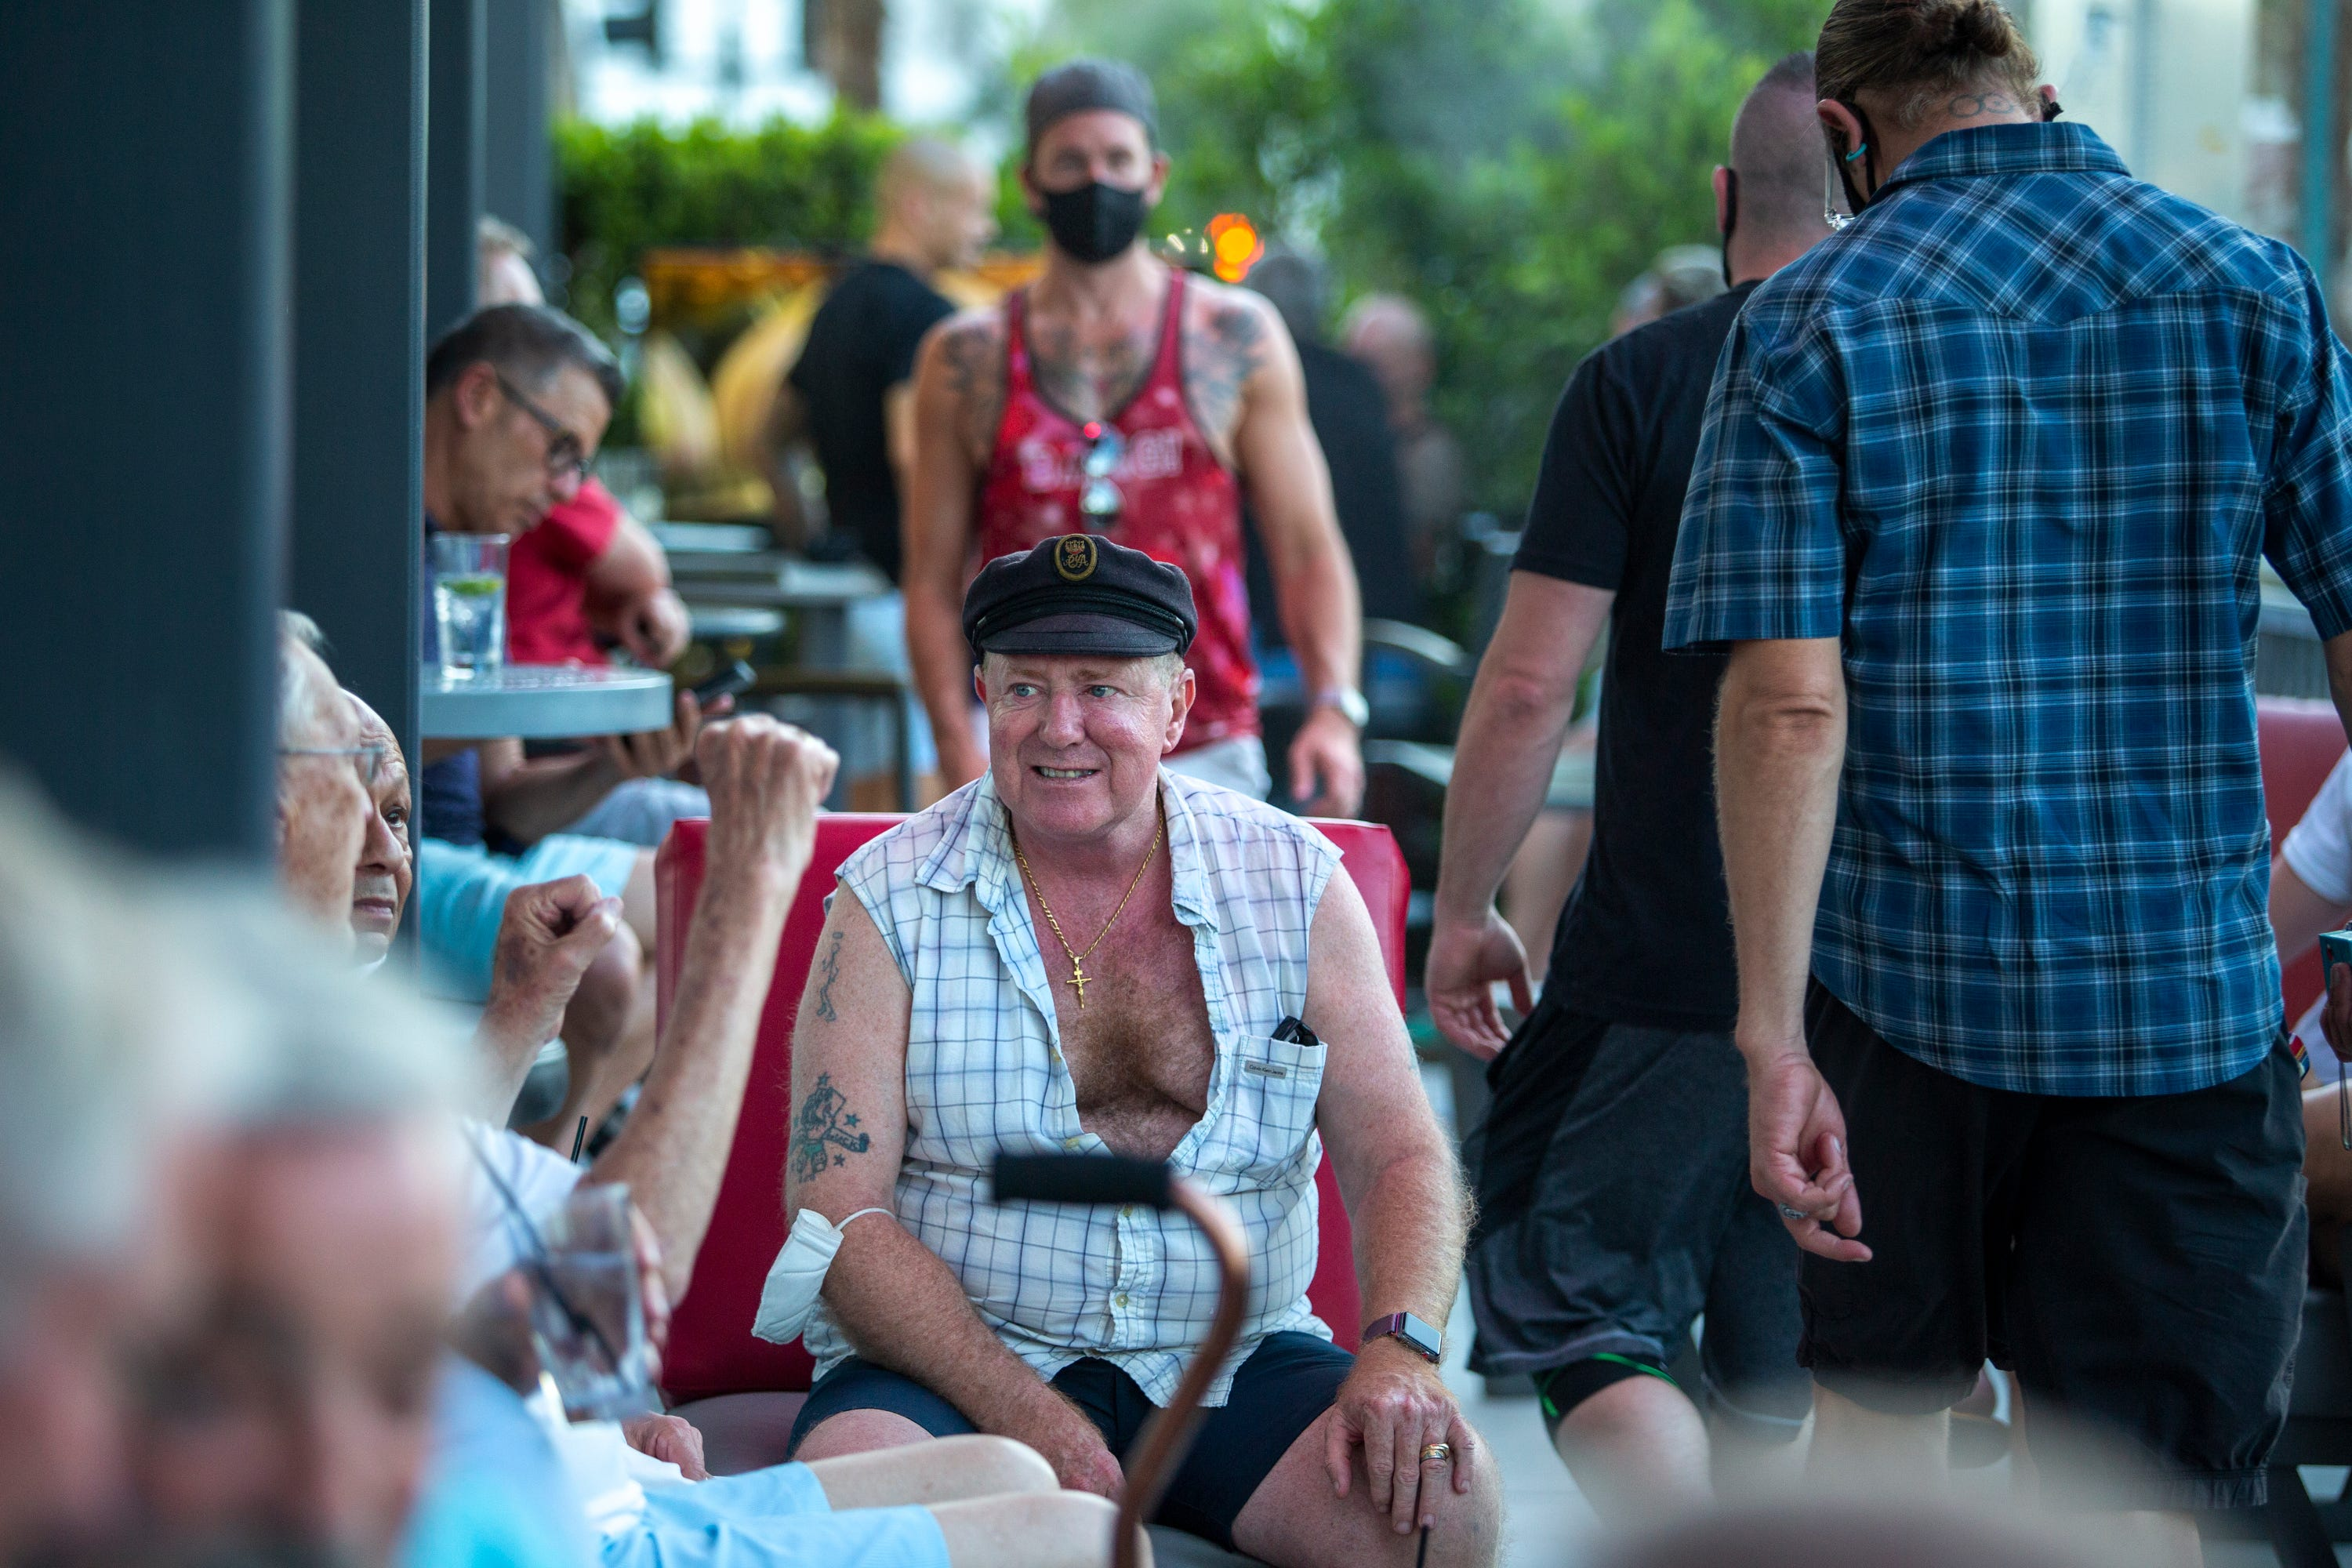 Tony Lawrence, center, socializes at Quadz Palm Springs on Arenas Road in Palm Springs, Calif., on Friday, April 30, 2021.